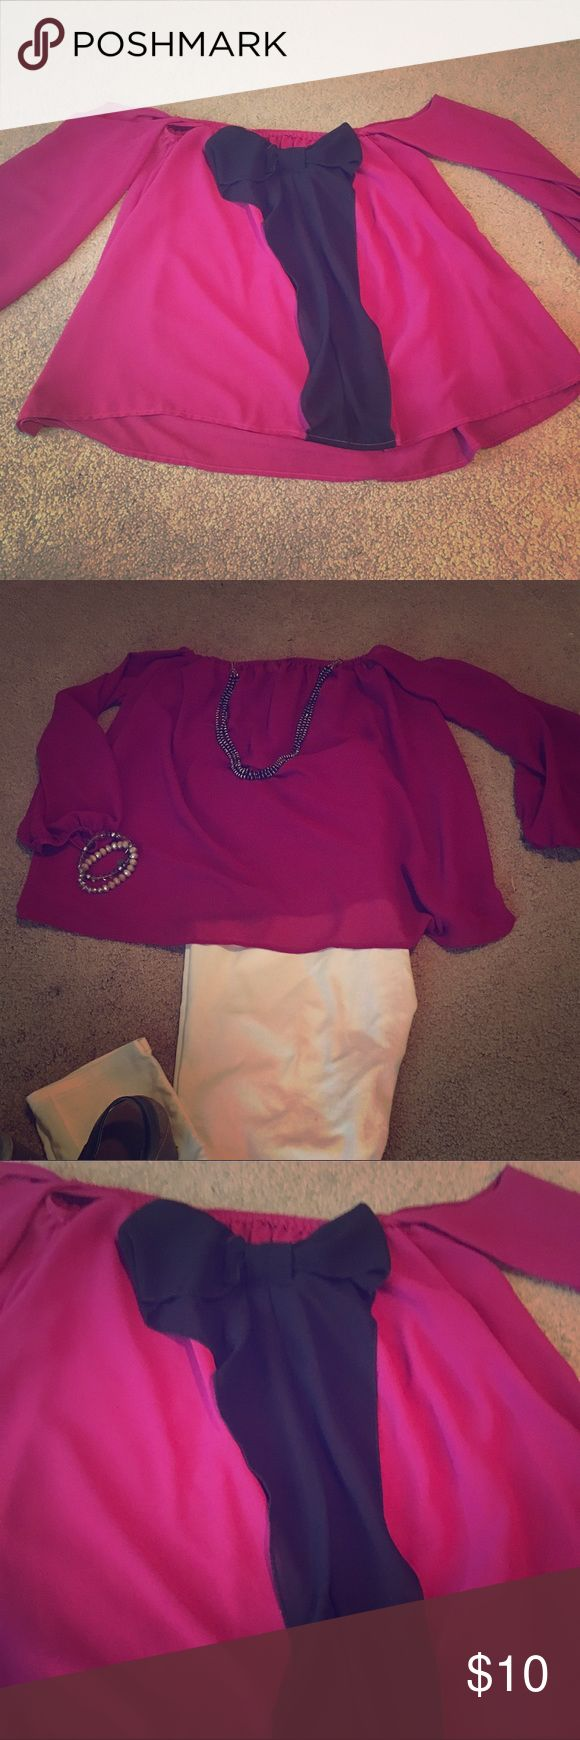 Off shoulder Maroon Bow Back shirt The off the shoulder top is super cute to dress up with white skinnies and heels! The back has a black bow details and the top is a maroonish/pink sheer color. Size small. This top was worn a lot, but still in excellent condition! Offers welcome! Tops